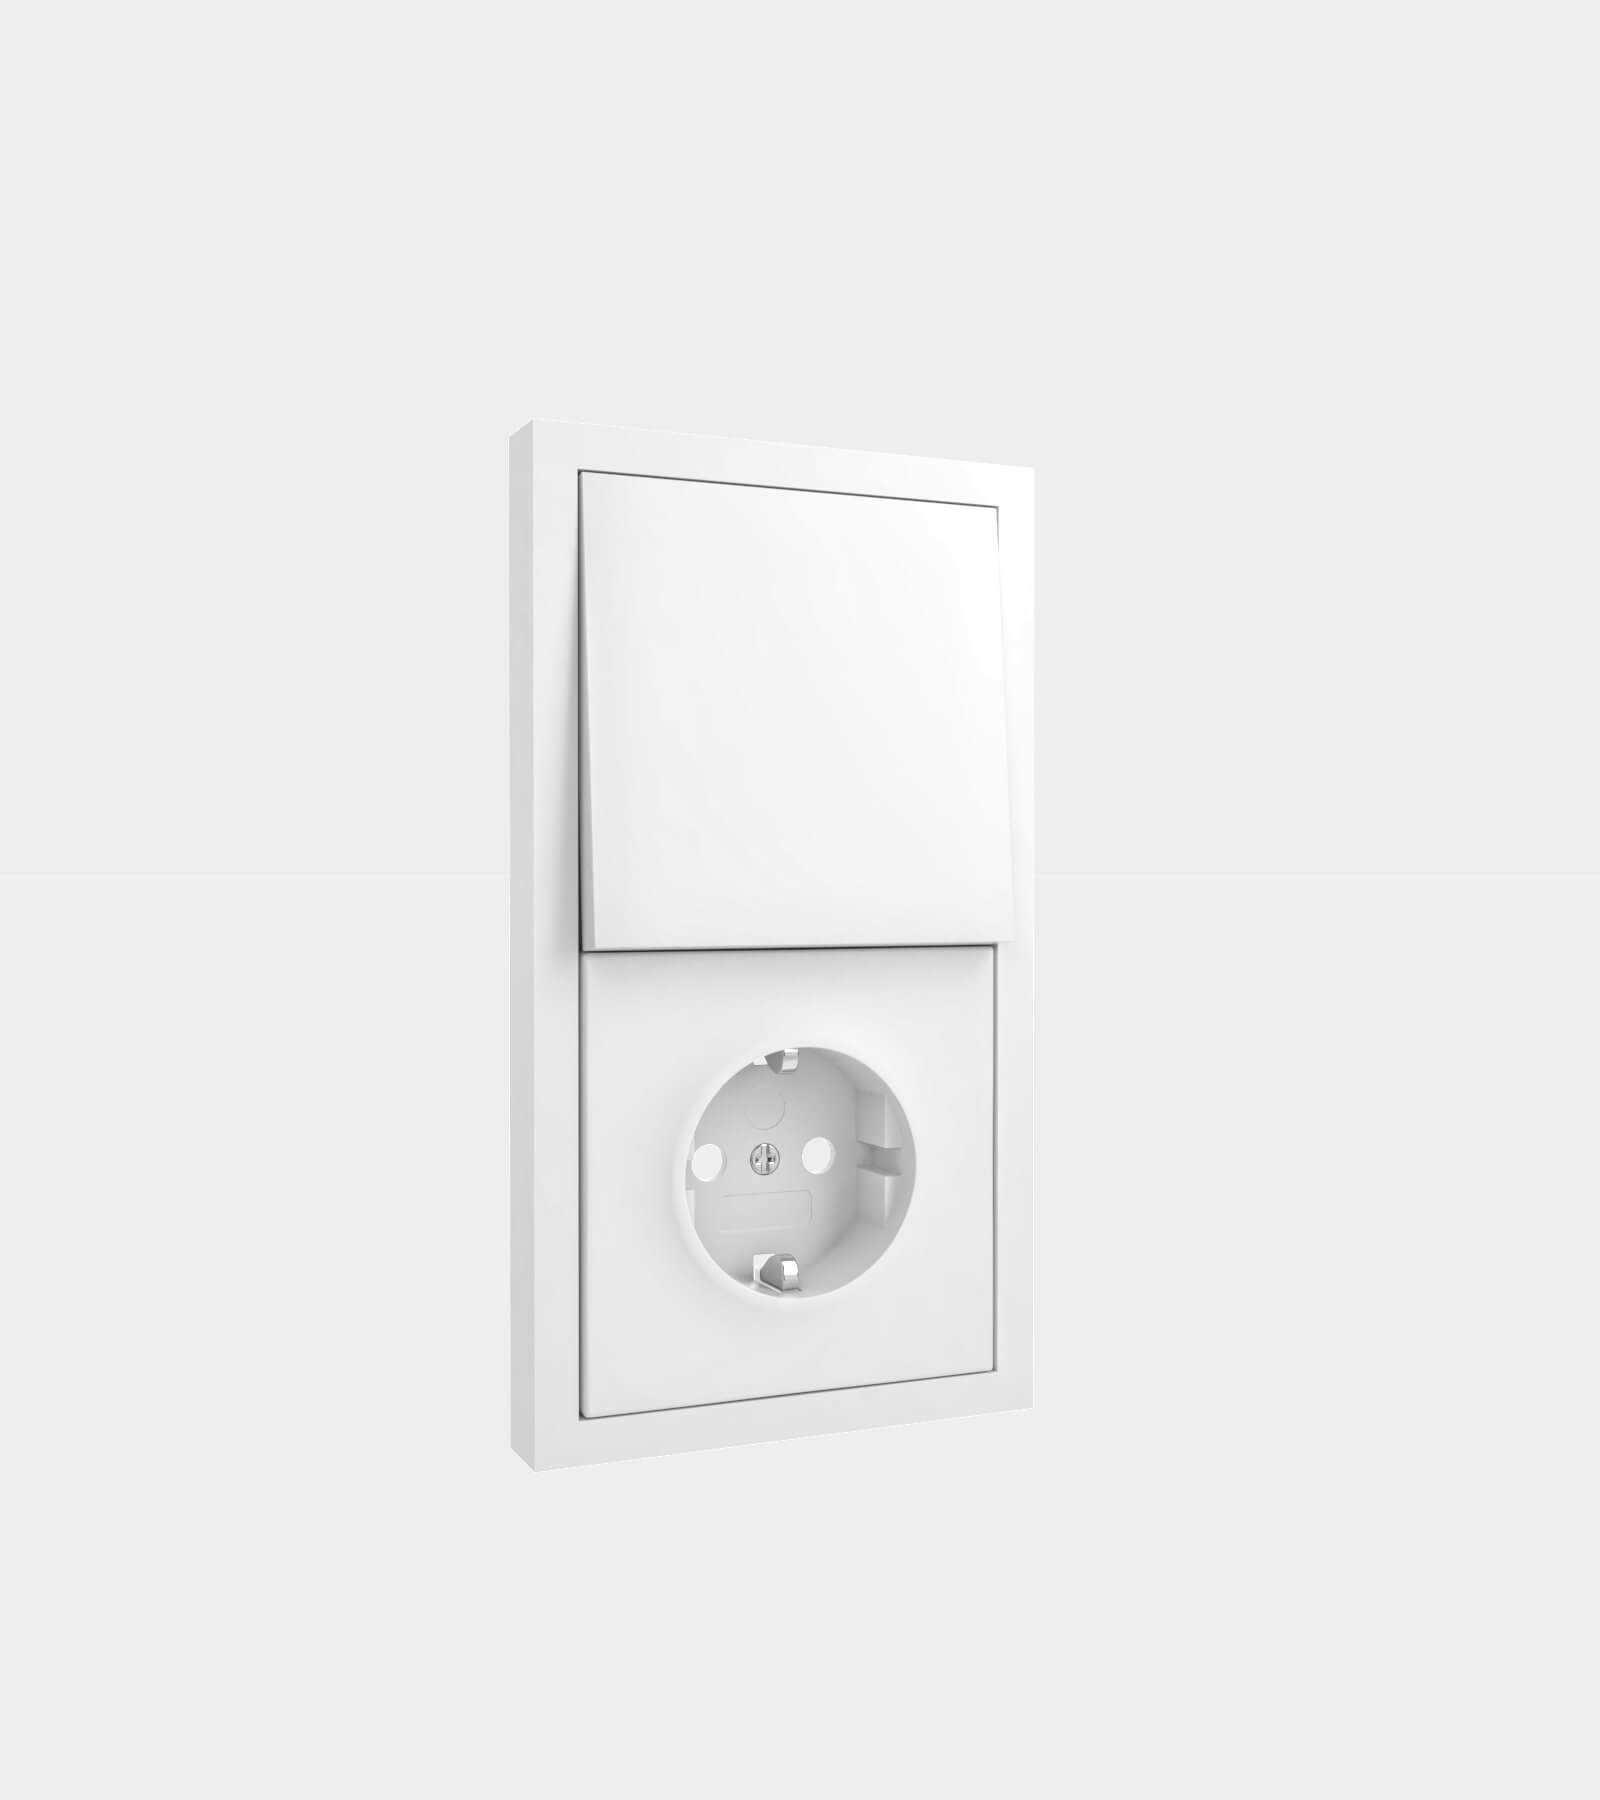 Socket with light switch 2 - 3D Model